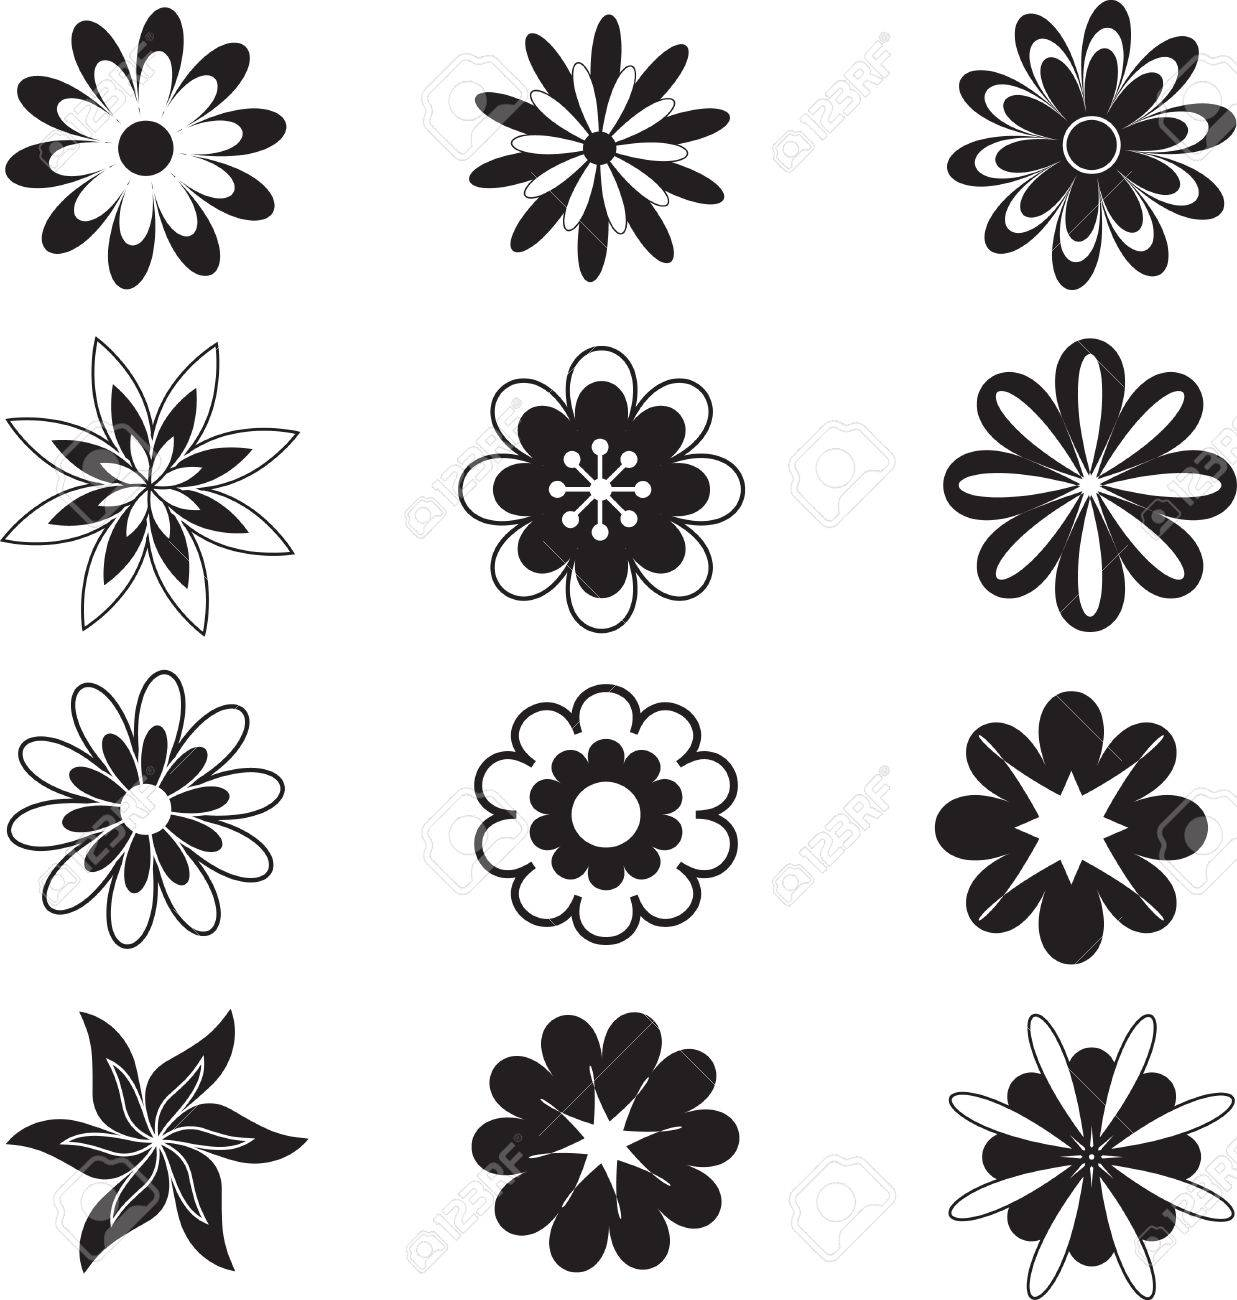 Isolated White And Black Flowers Flower Vectors Royalty Free